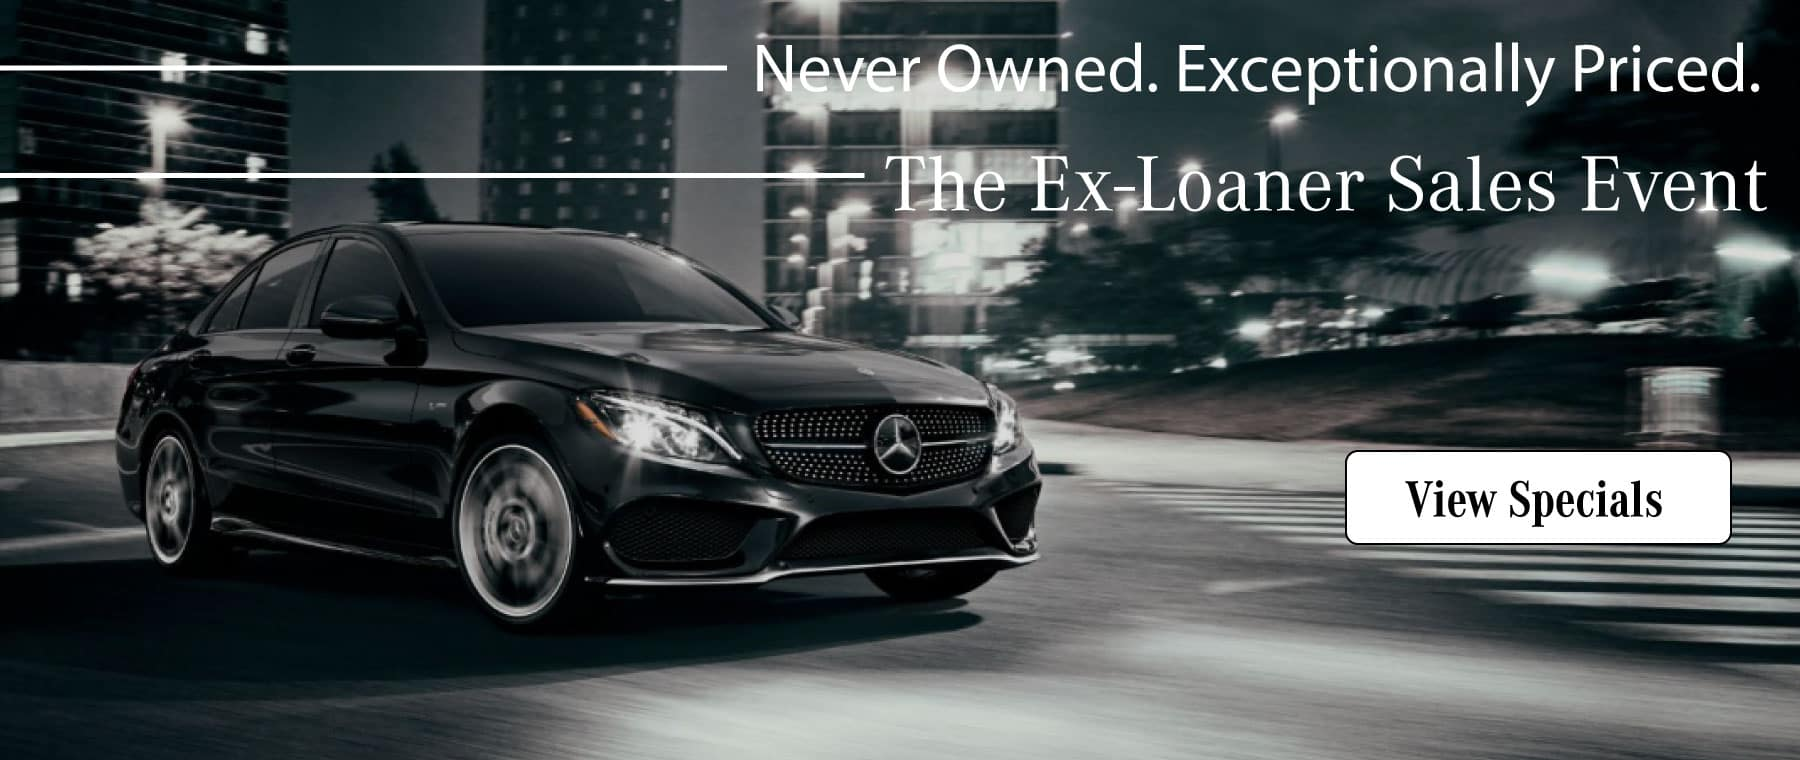 Mercedes-Benz of Chantilly | Luxury Auto Dealer near South